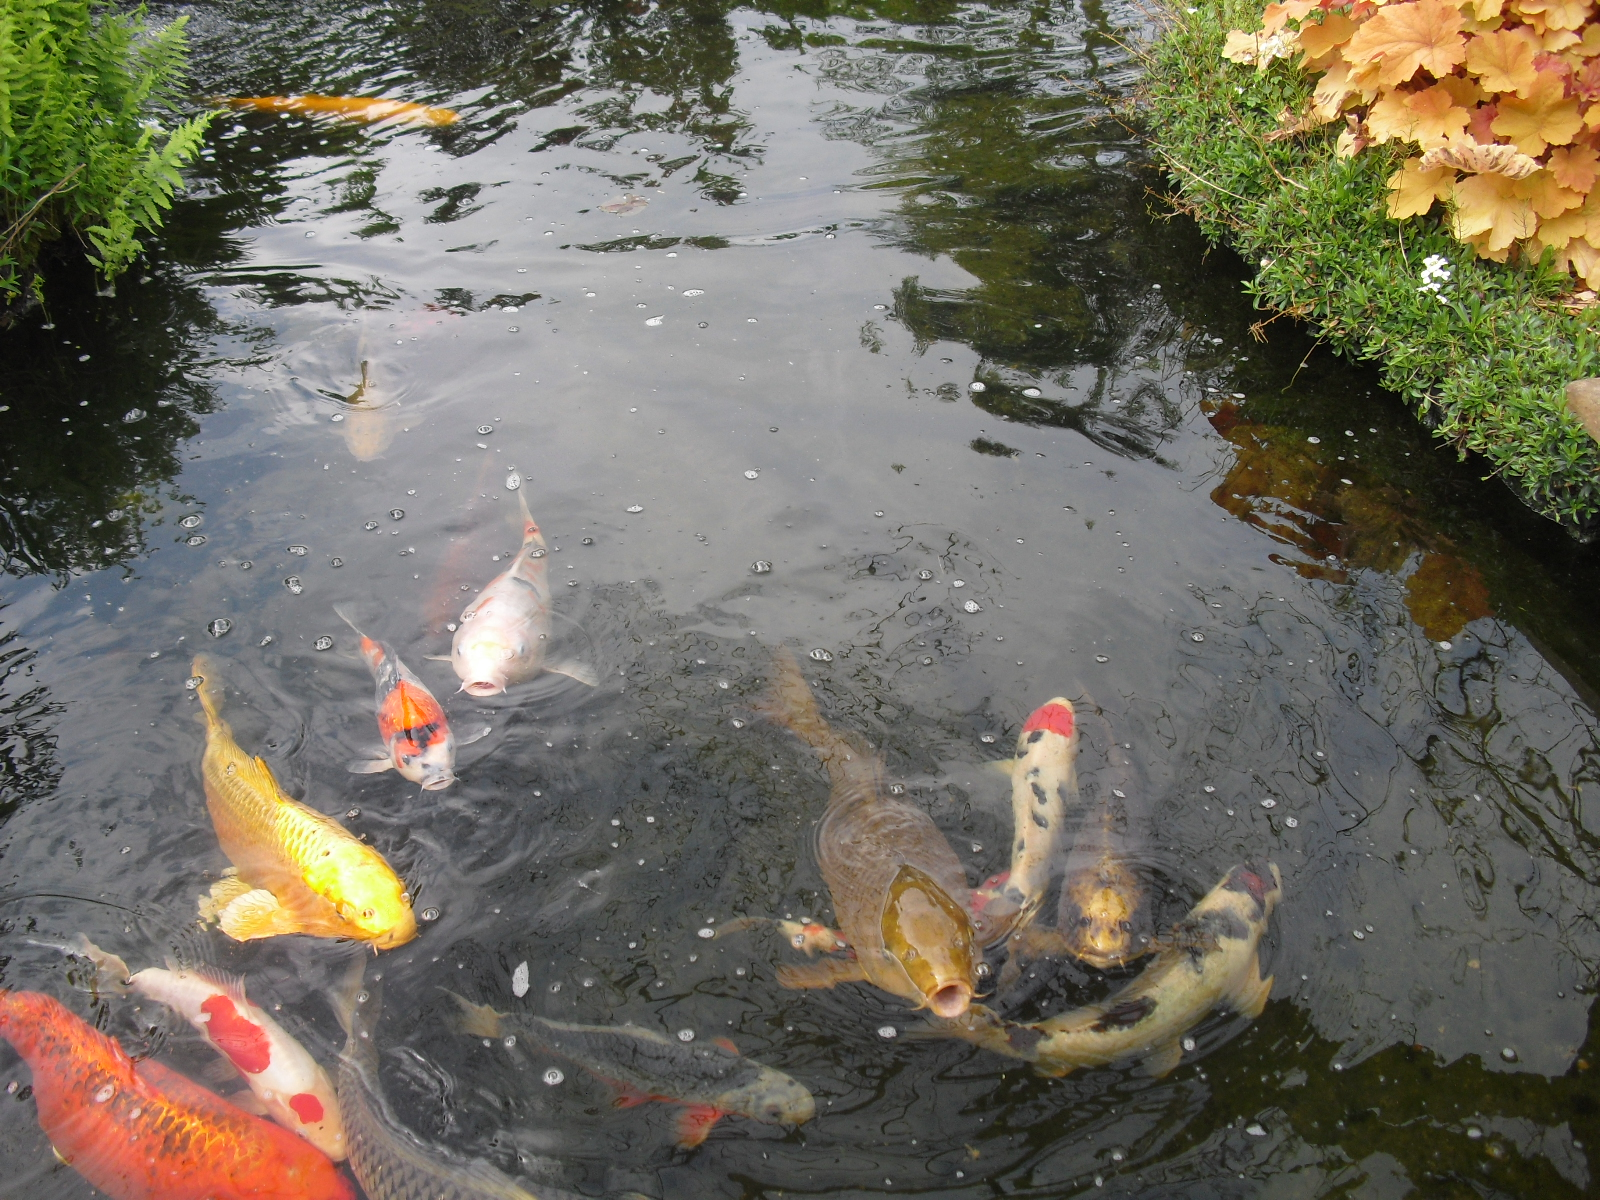 Vari t s de poisson de bassin de jardin ko du japon for Vente de poisson rouge grenoble